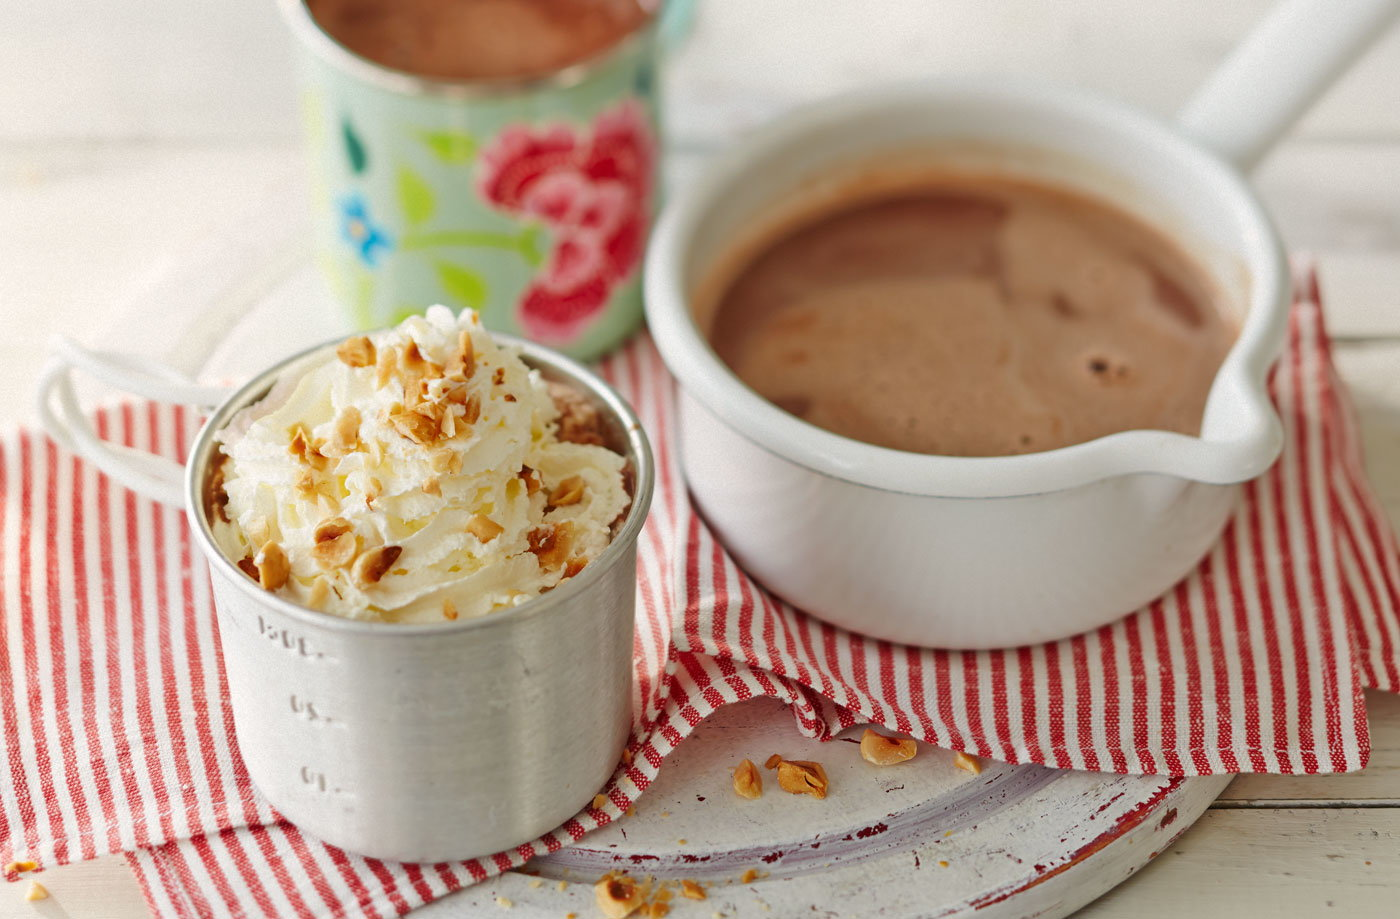 Can You Make Hot Chocolate With Nutella